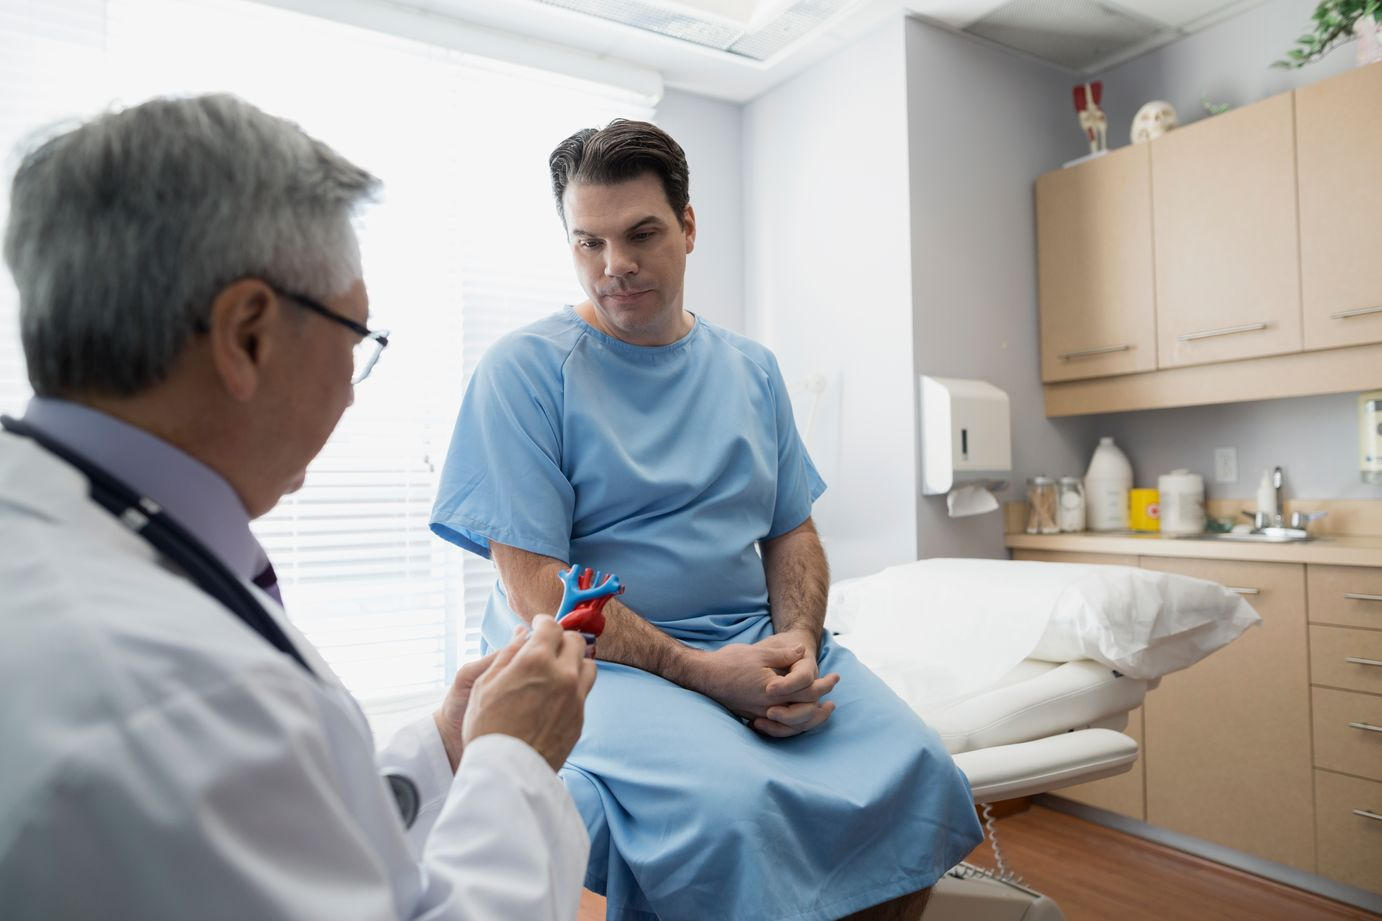 Middle aged male sits on examination table in blue hospital gown as male doctor in white lab coat shows him a model of the heart.